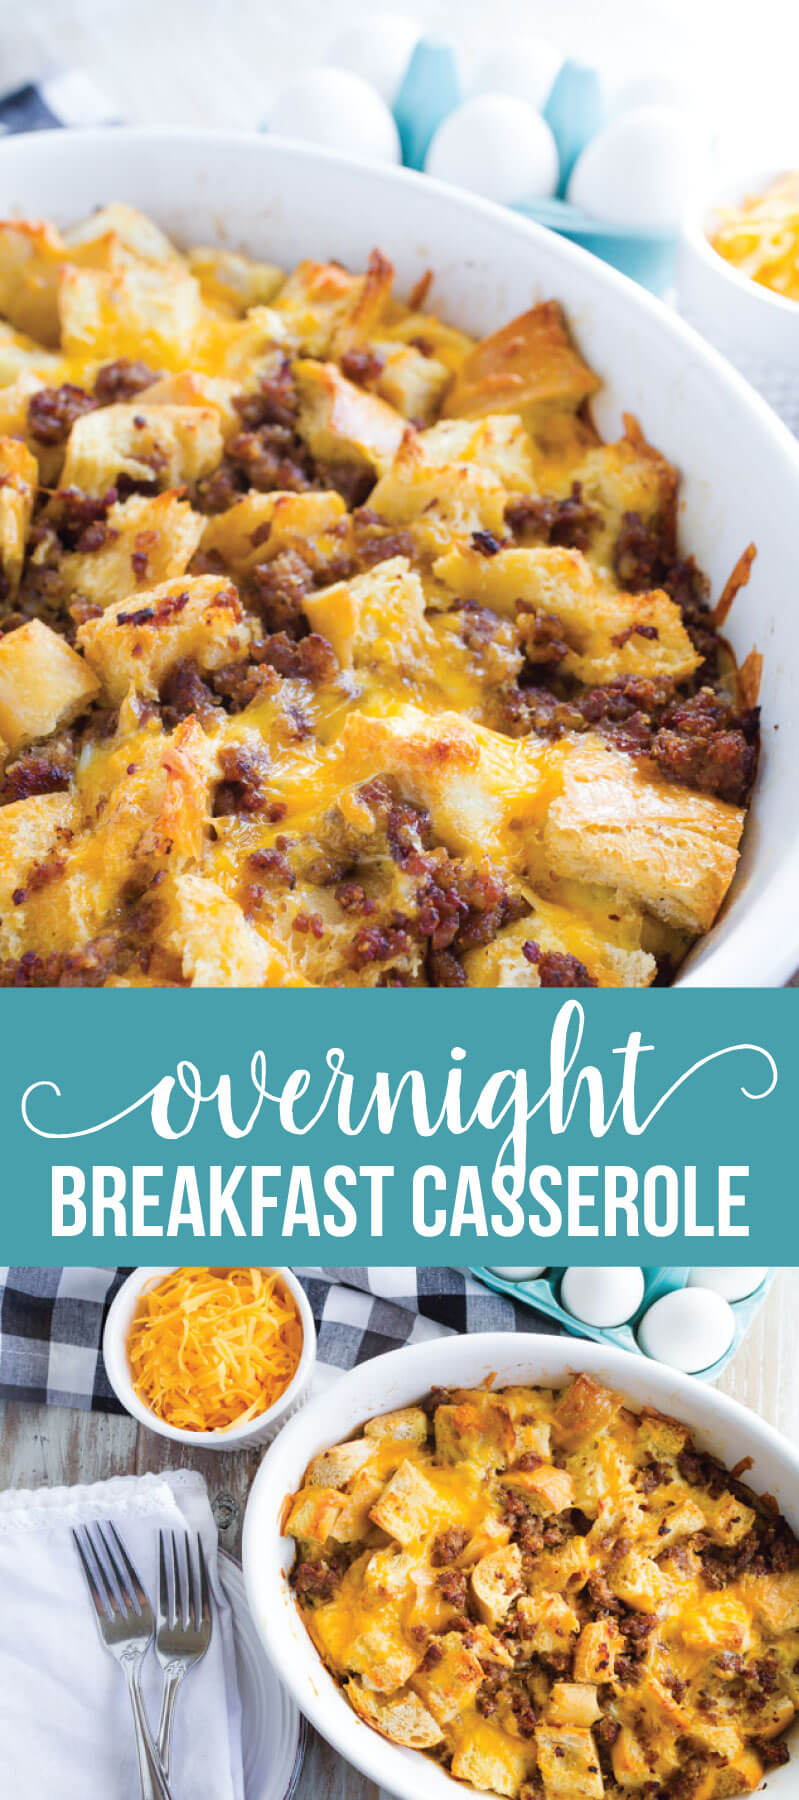 Overnight Breakfast Casserole - make this breakfast recipe ahead of time and pop it in the oven on the morning of.  SO good!  www.thirtyhandmadedays.com